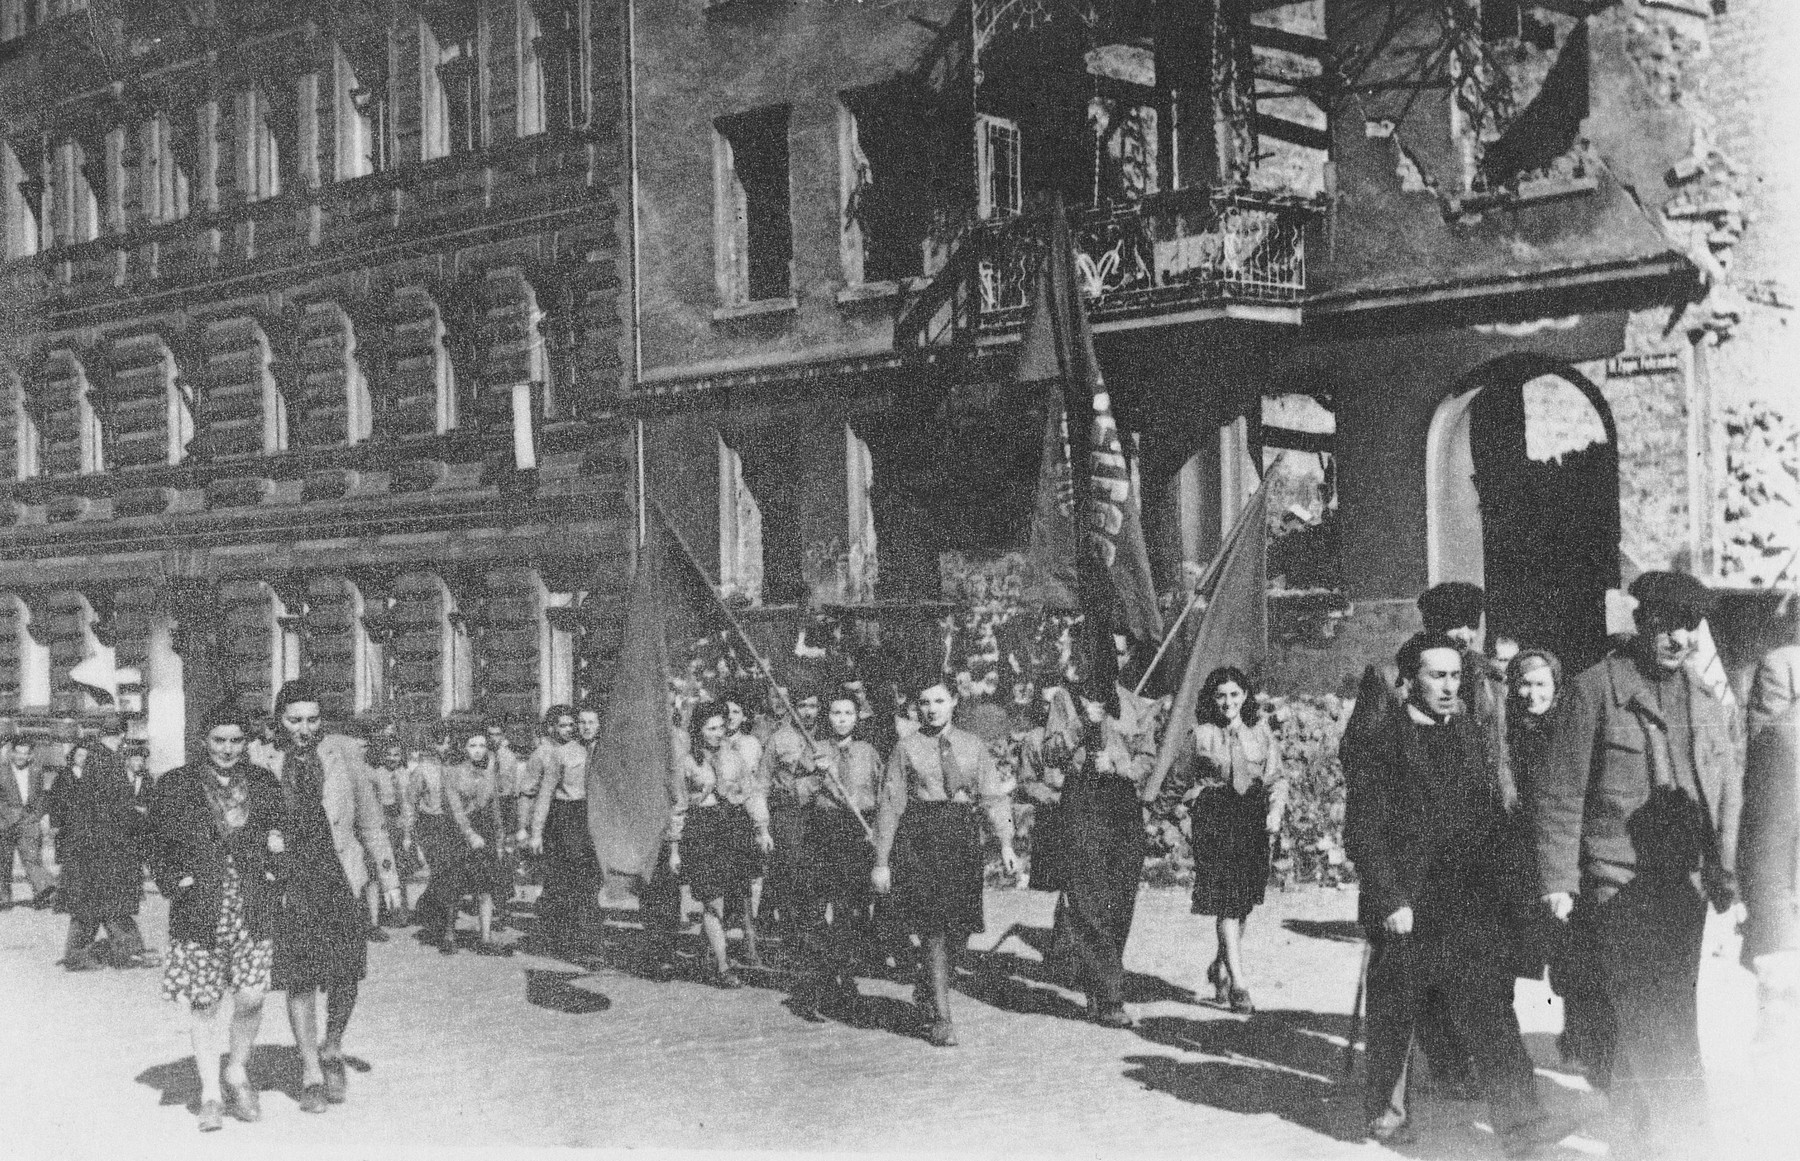 Helena Storch marches in a parade to commemorate the anniversary of the Warsaw ghetto uprising.